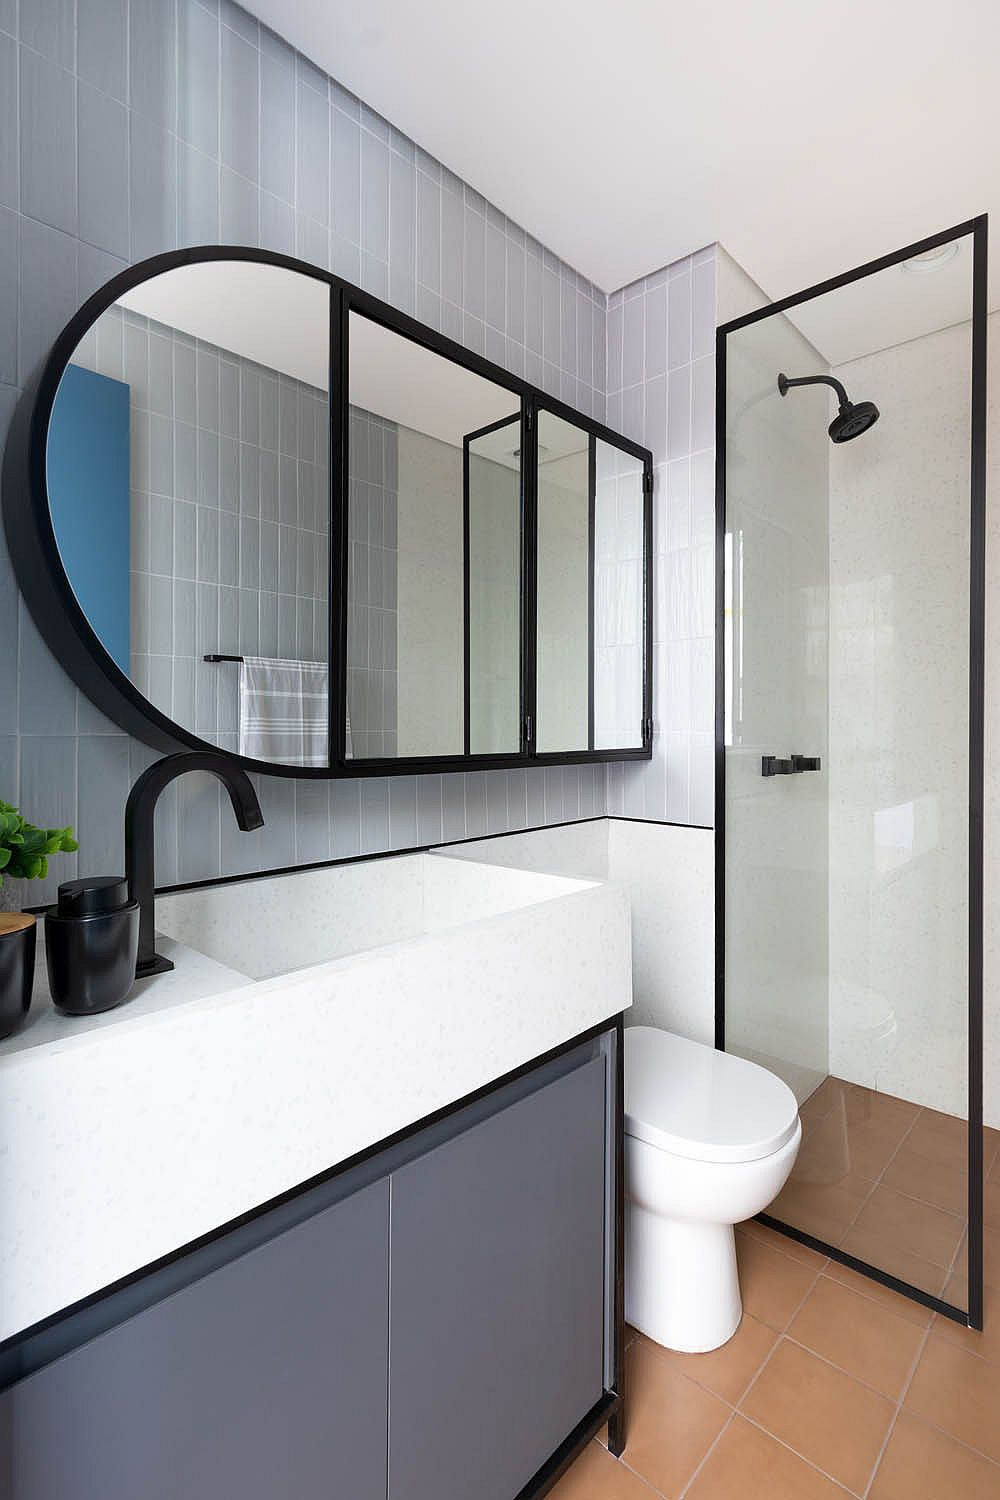 Bathroom in bluish-gray and white along with stylish contemporary mirror